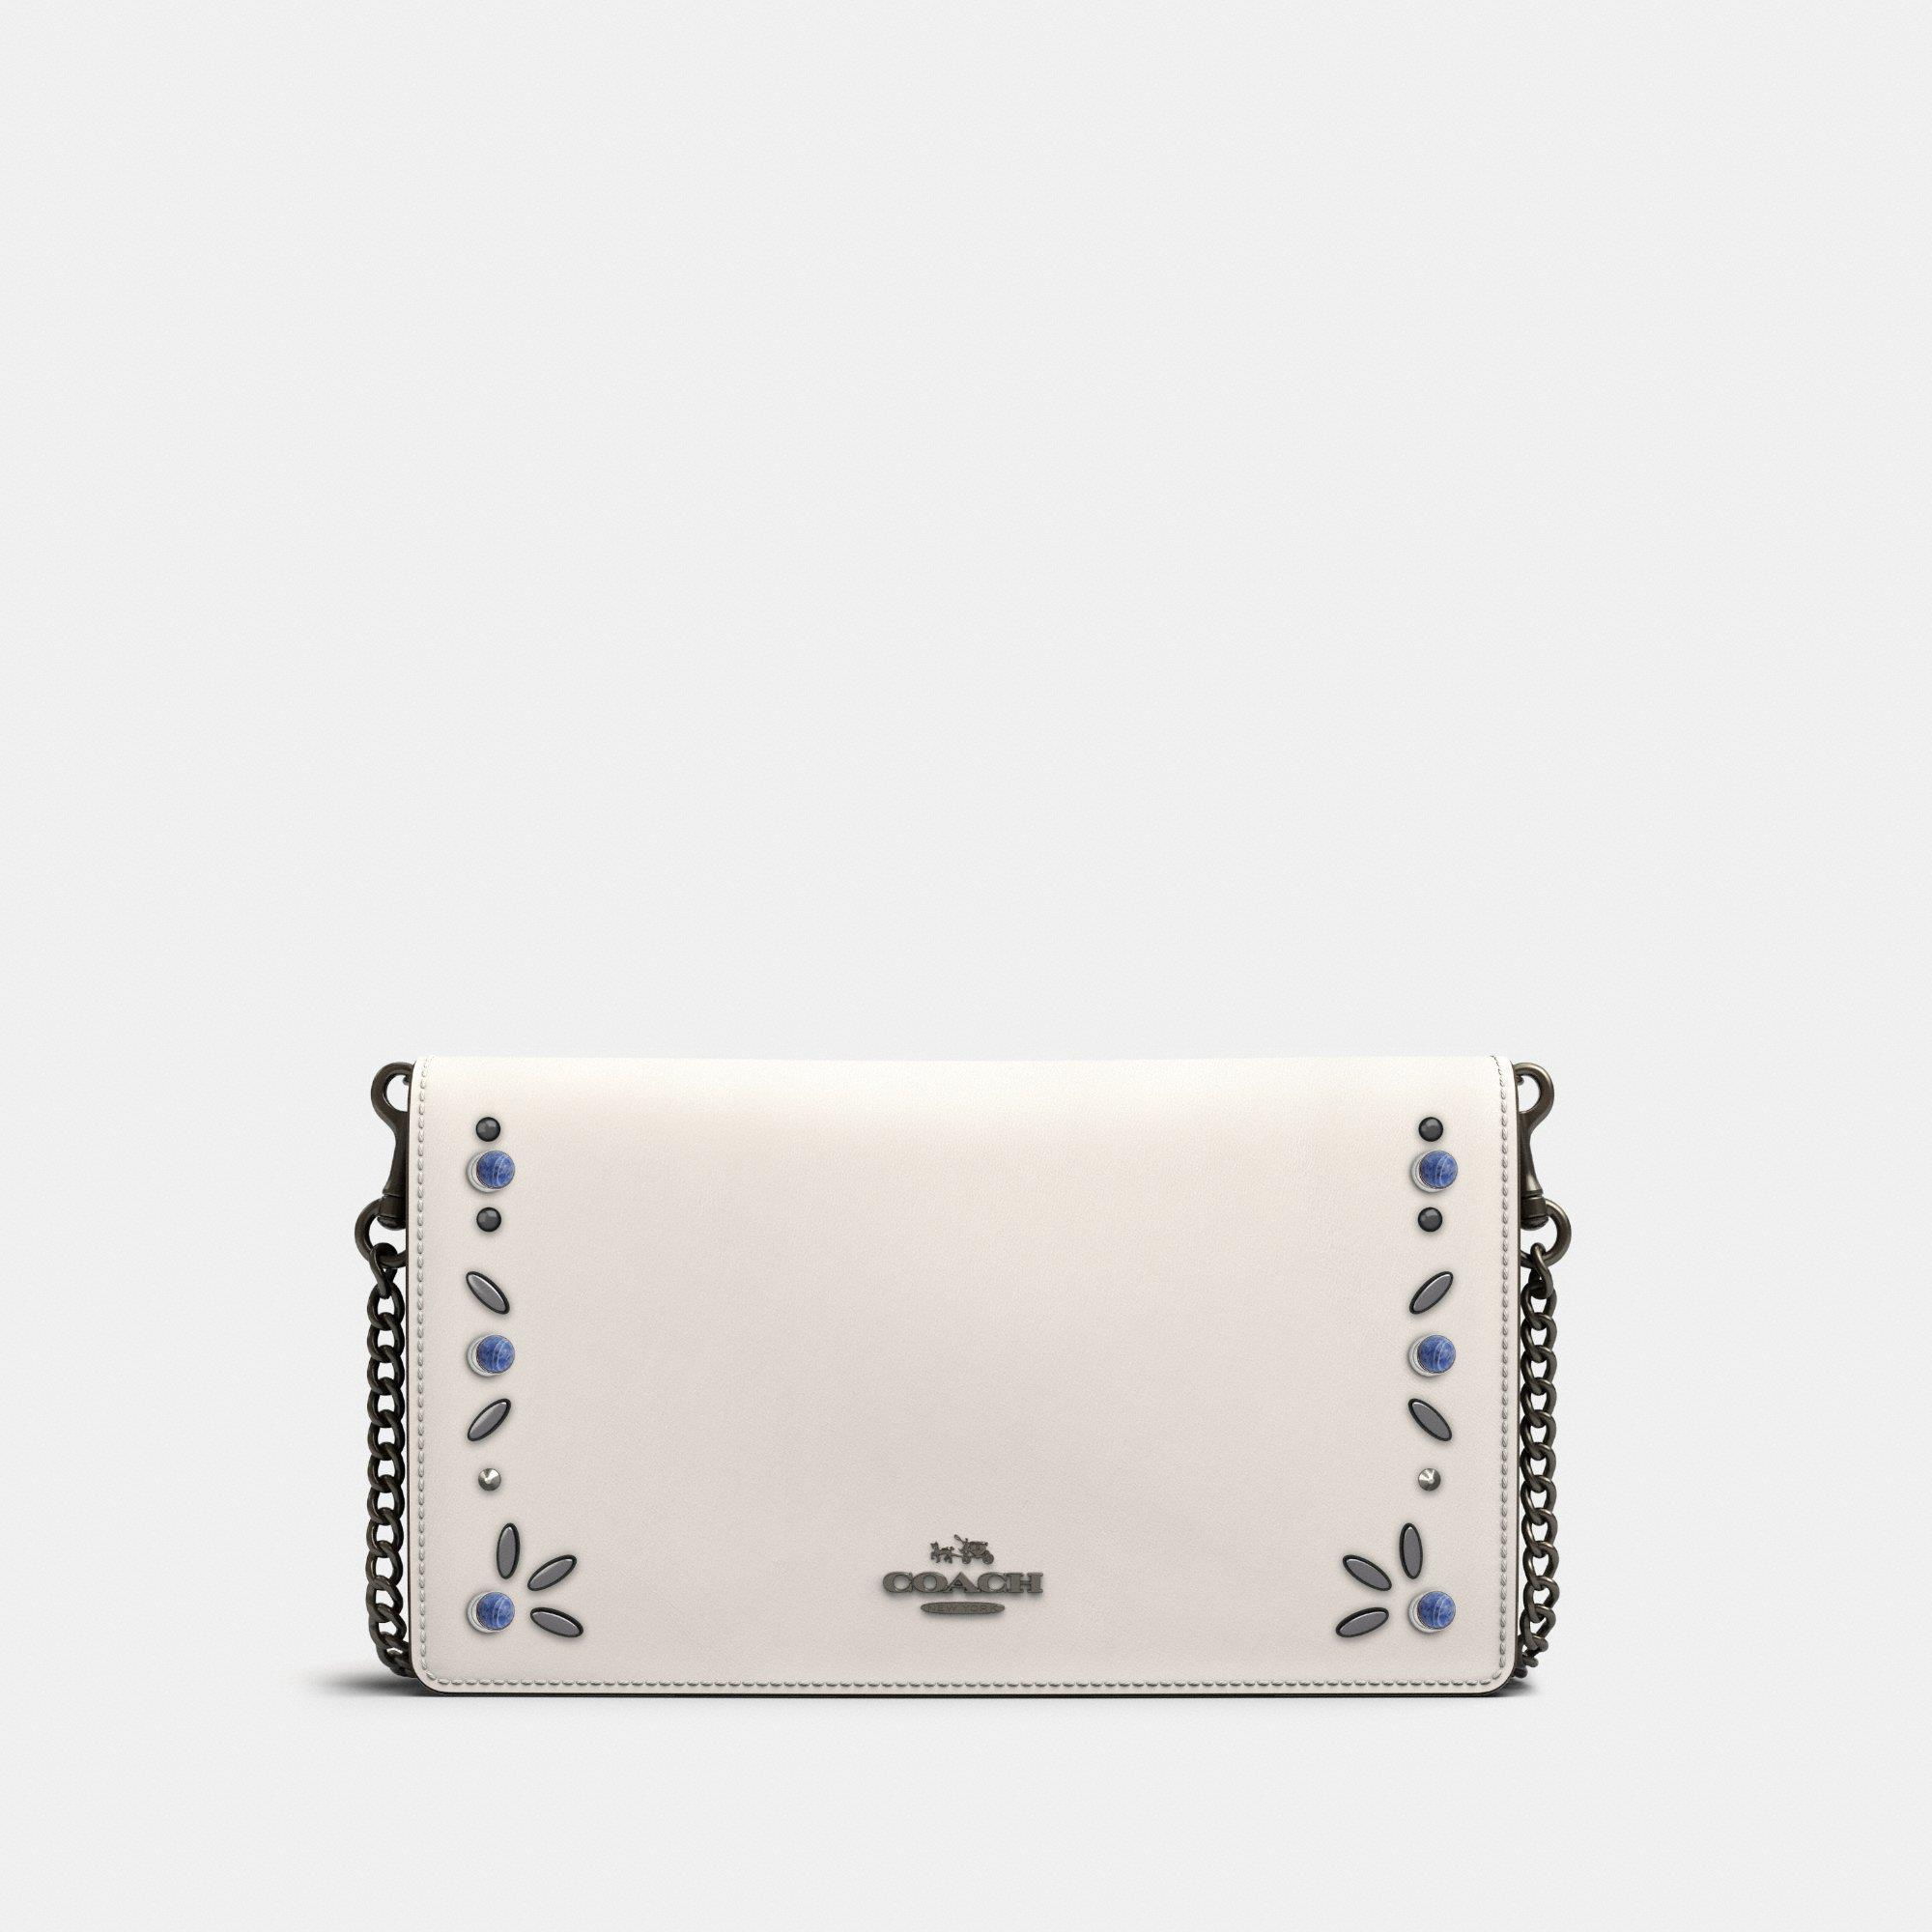 Customize CALLIE FOLDOVER CHAIN CLUTCH